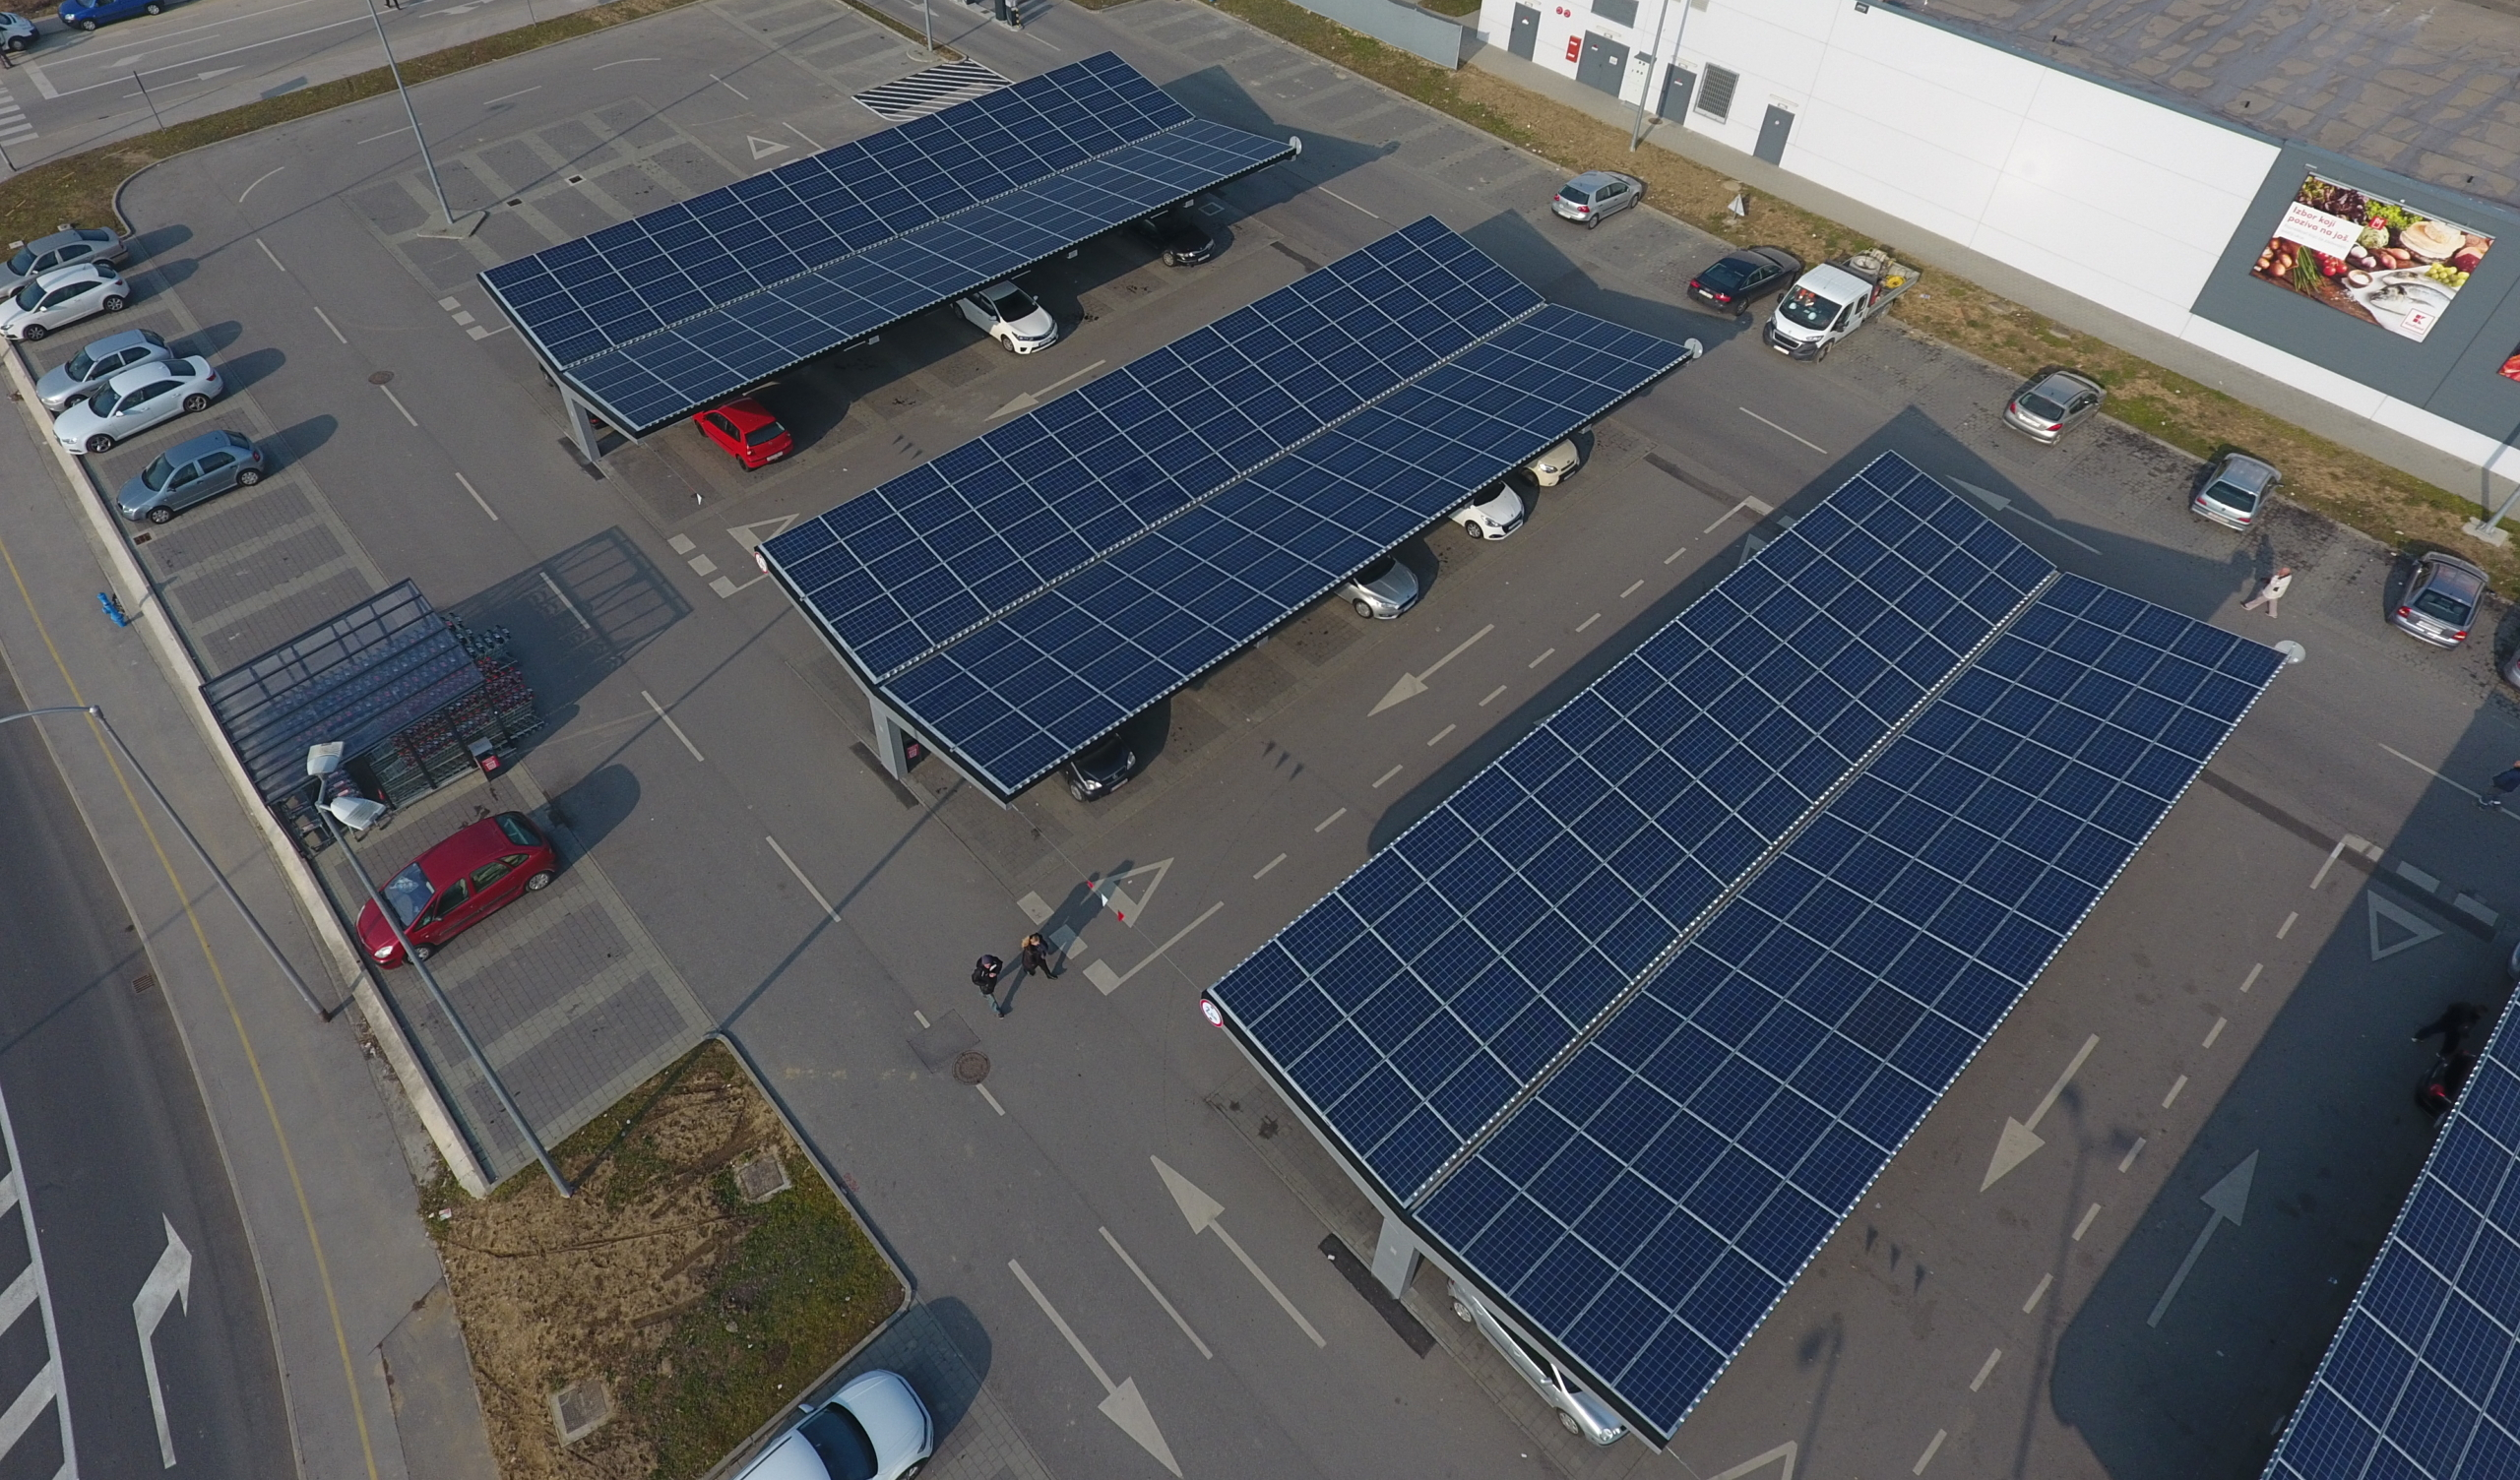 Drone photo of an integrated photovoltaic system on a parking lot in Croatia.